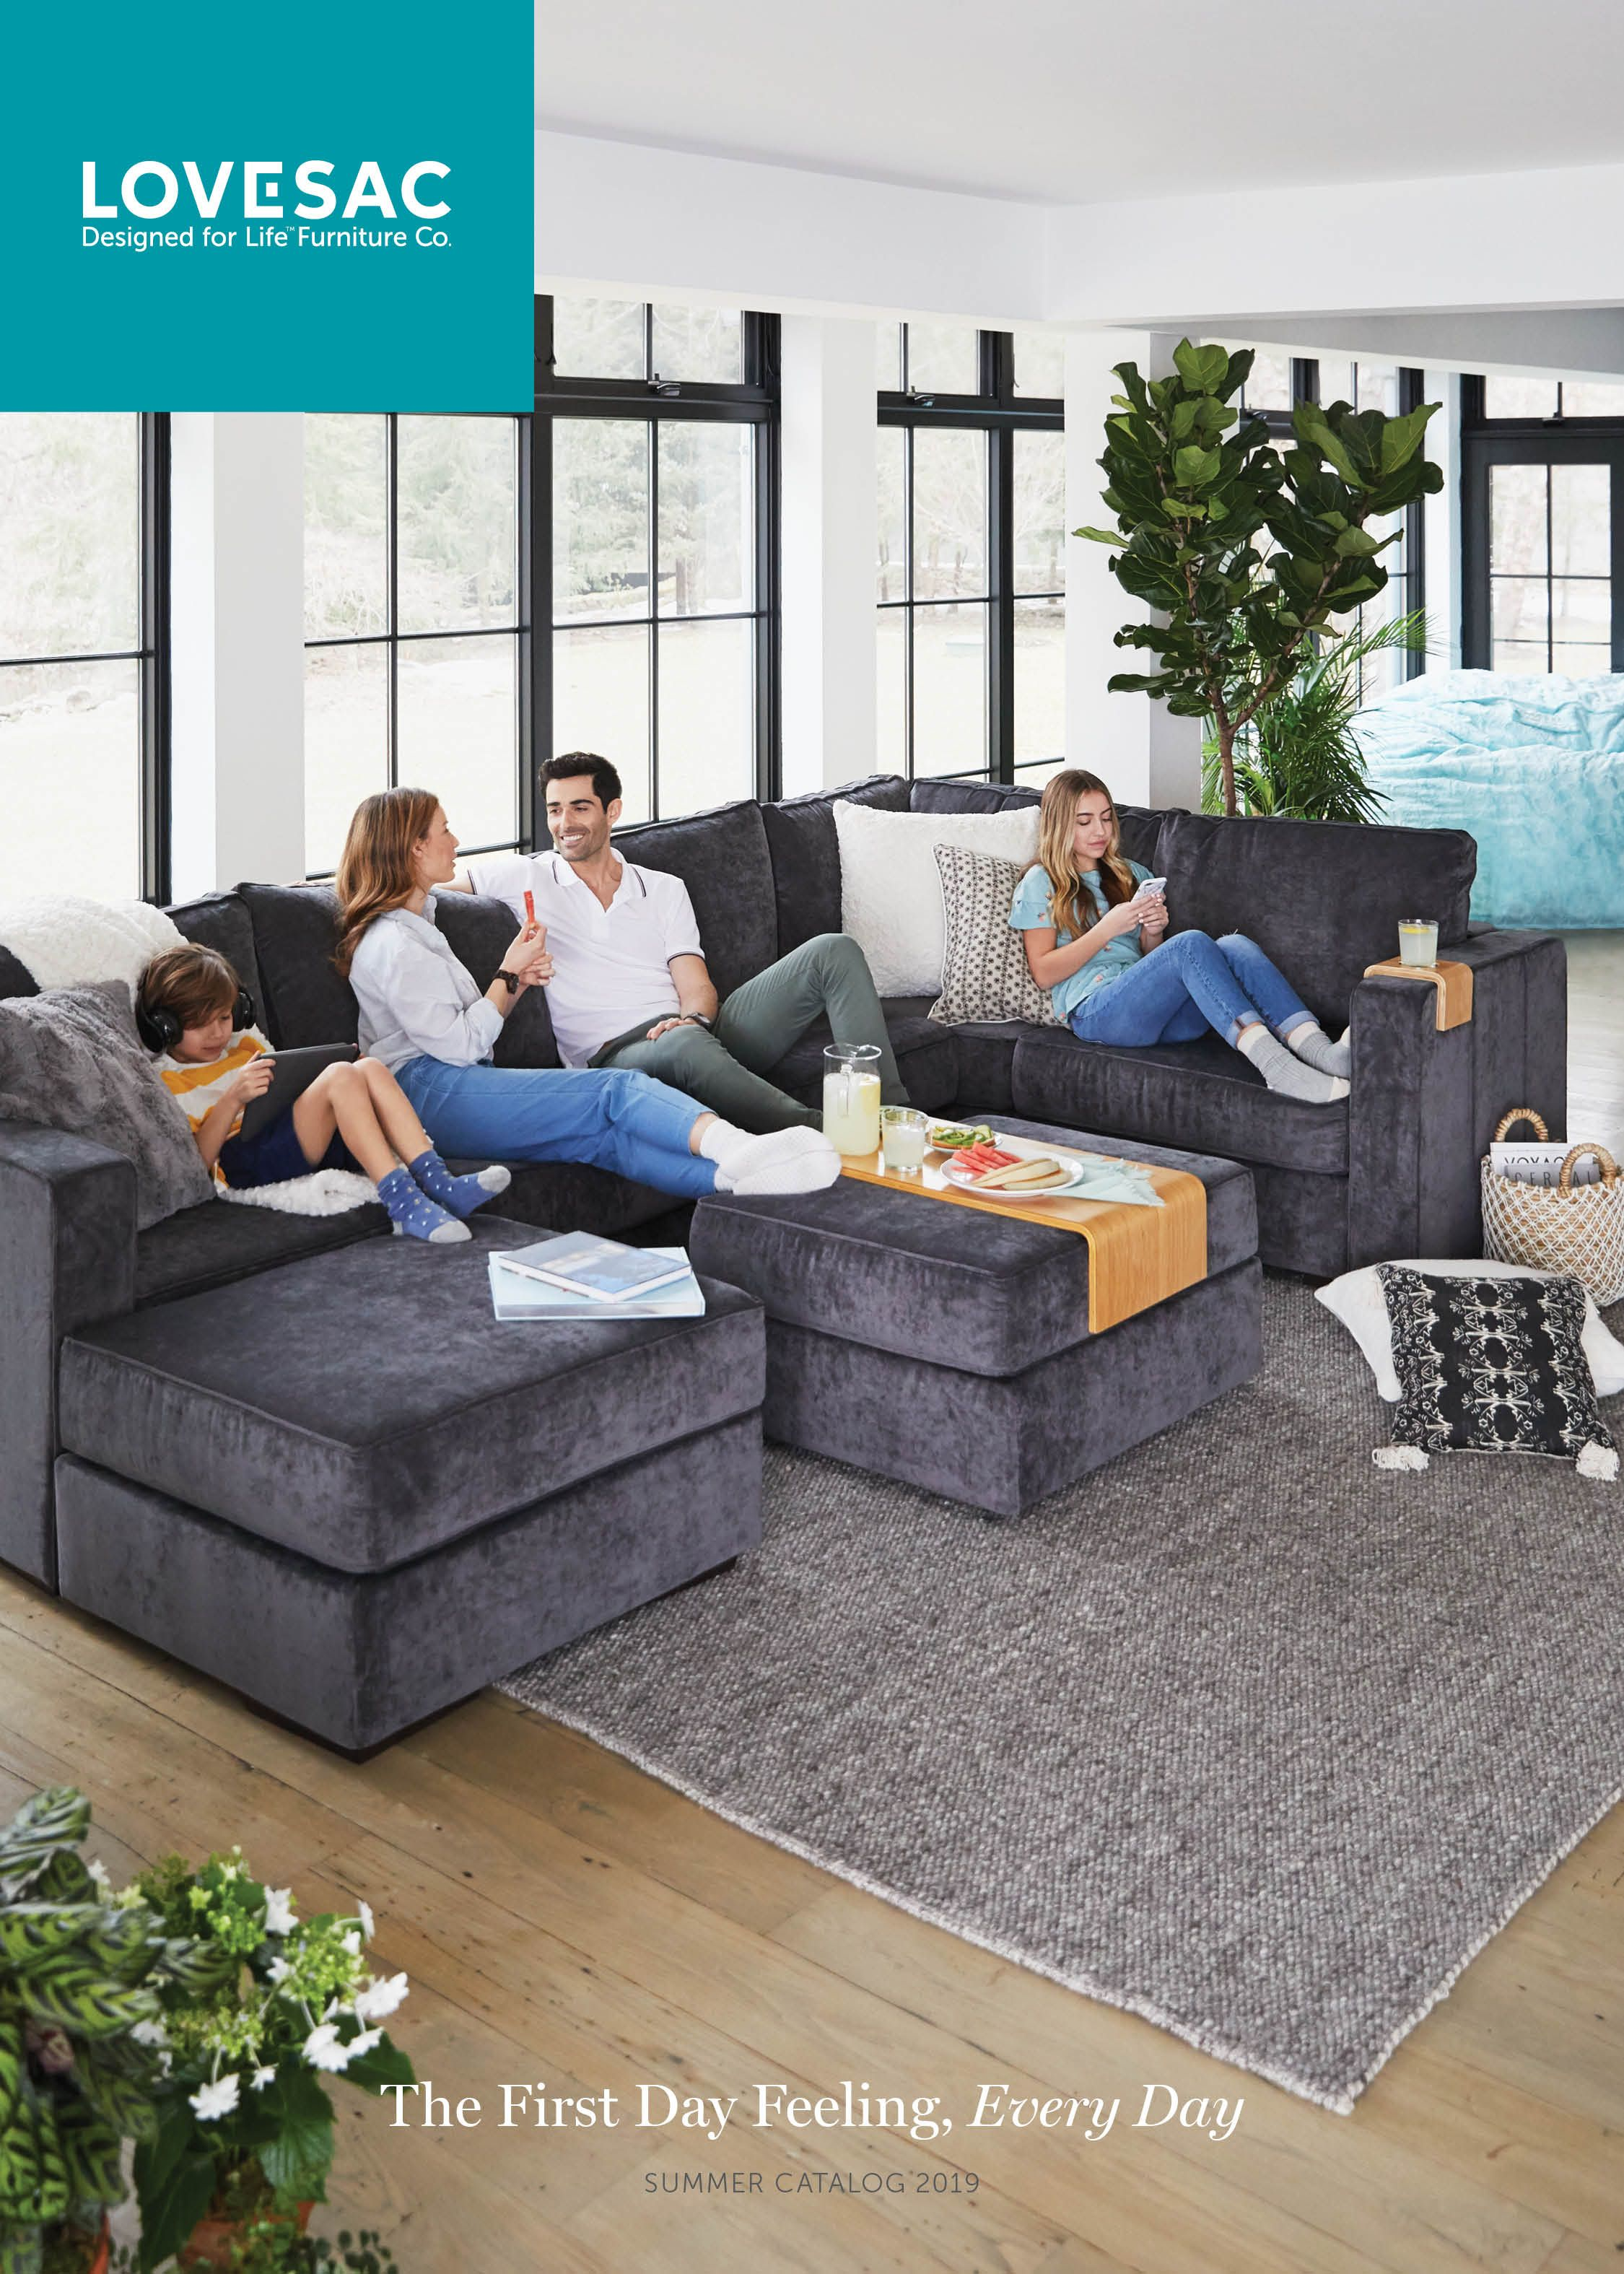 Fill Out The Form To Join The Lovesac Mailing List And Receive